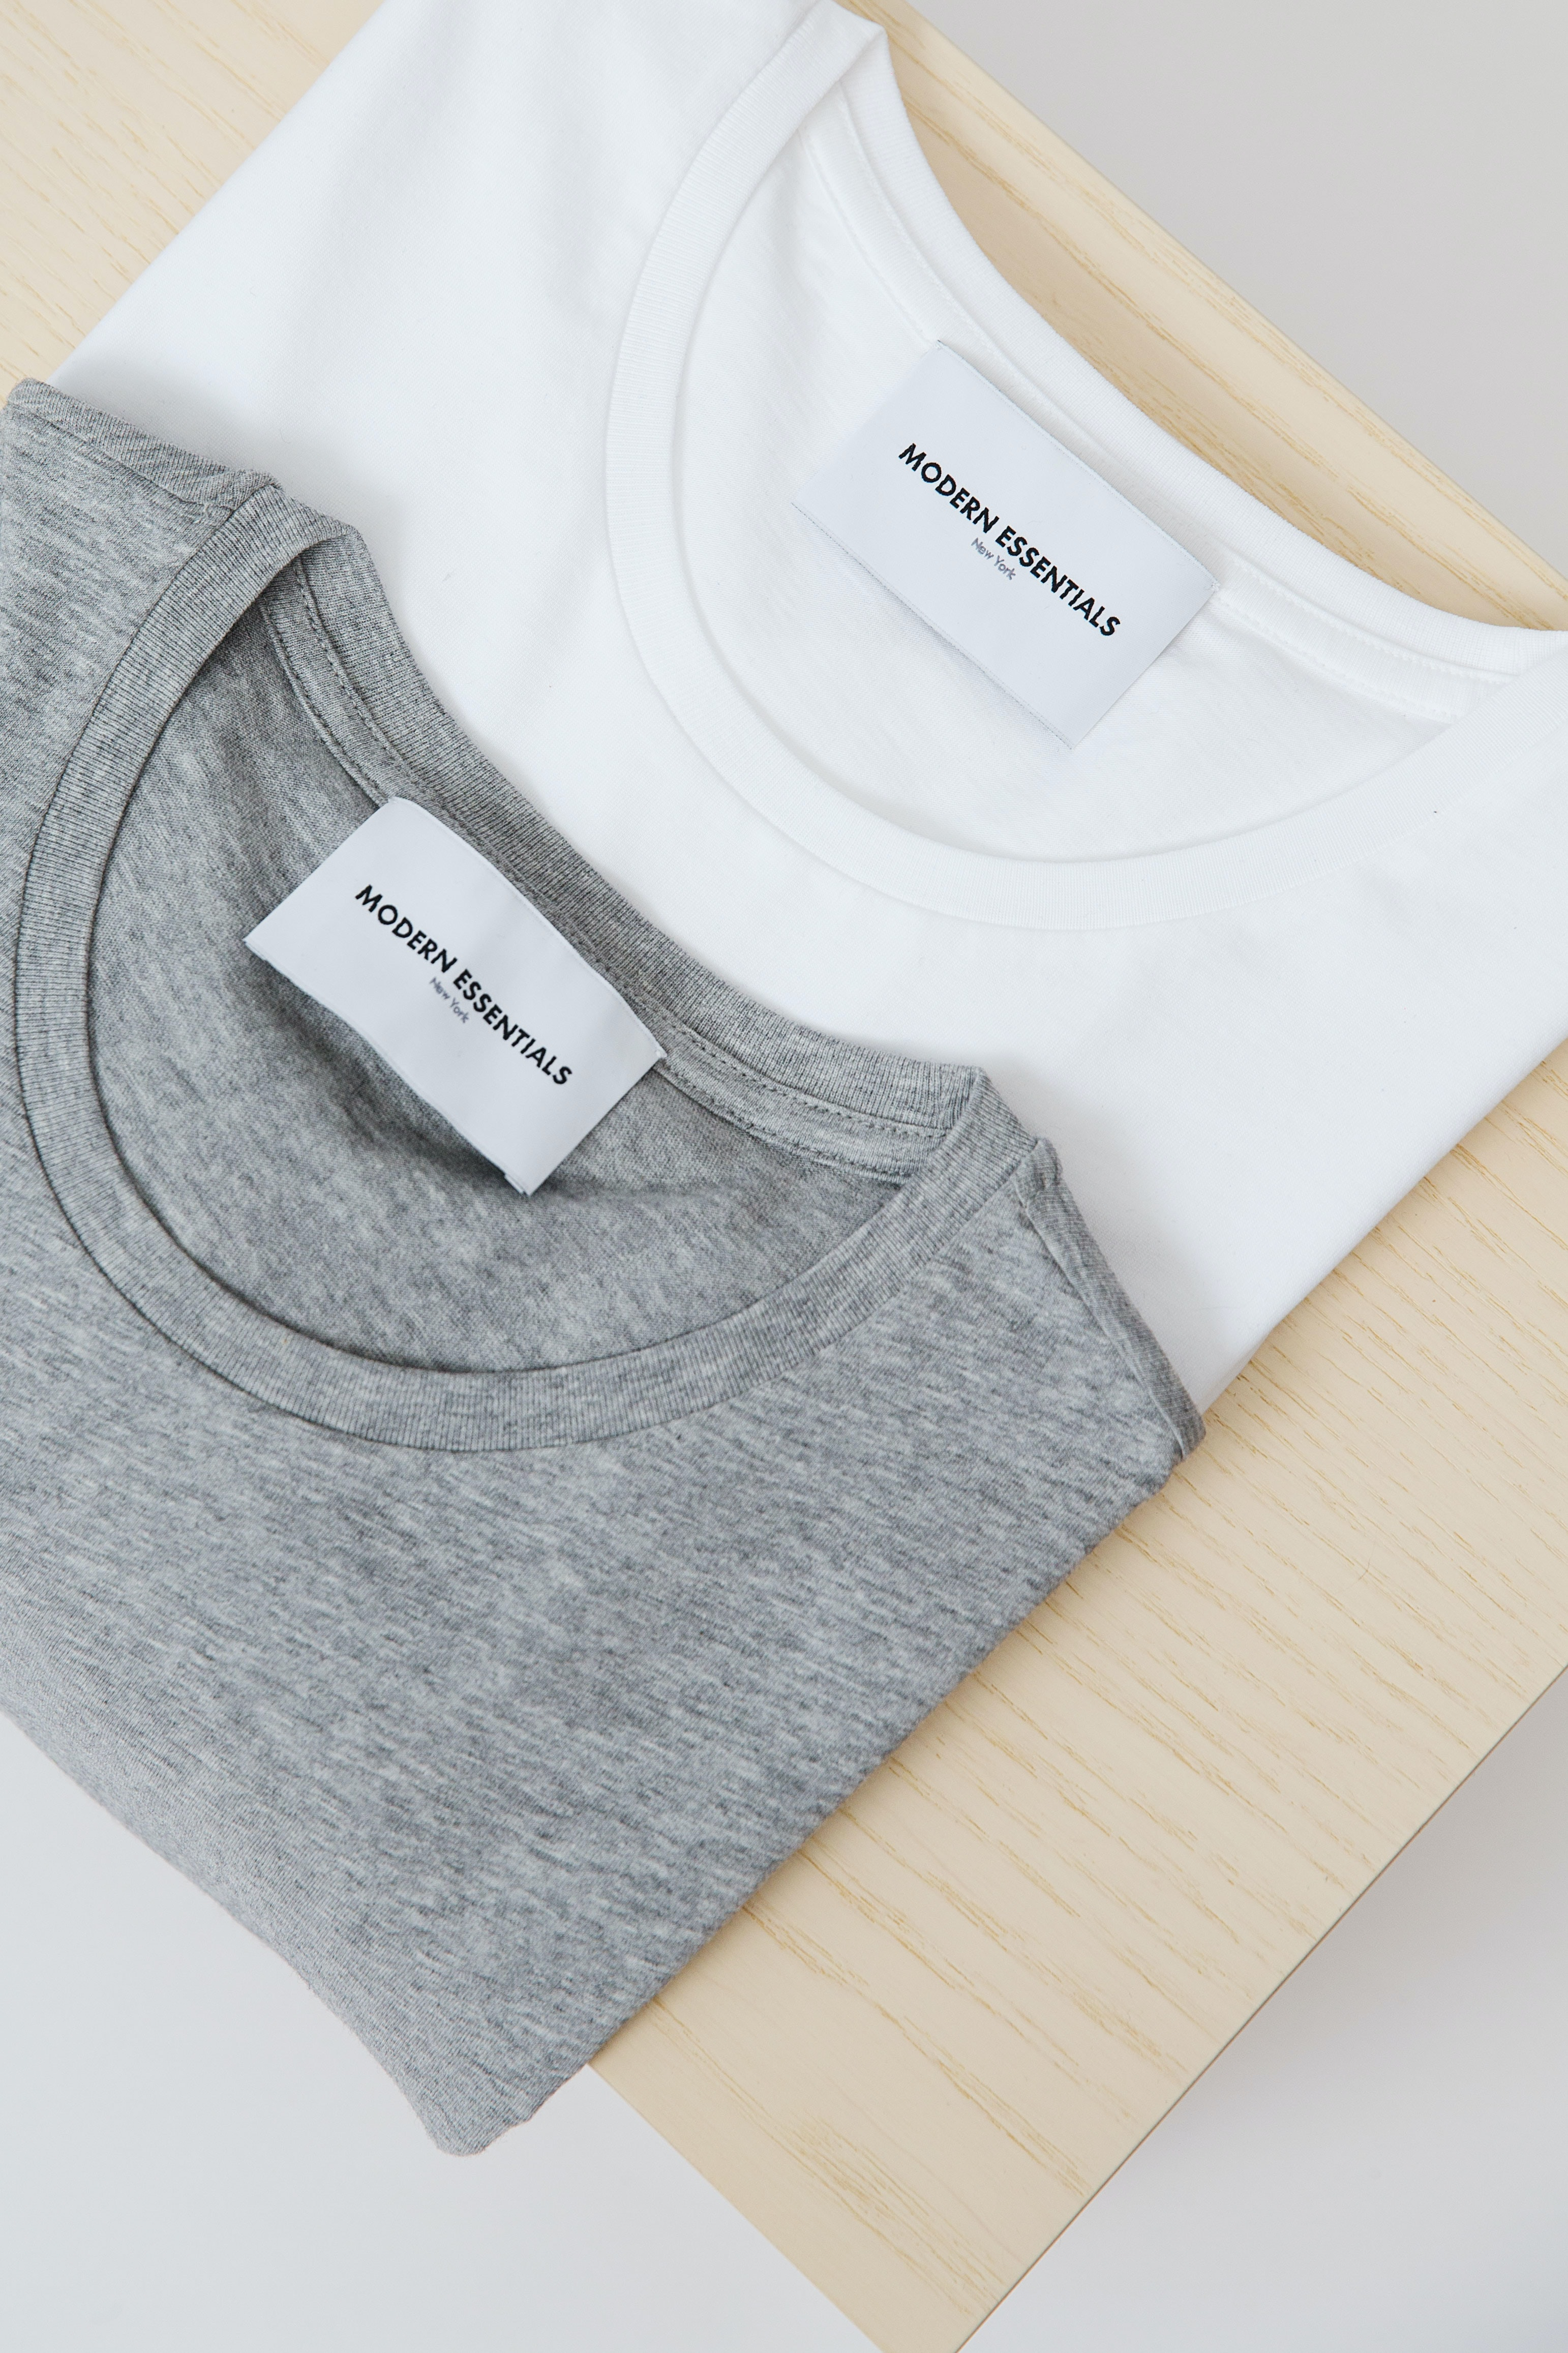 white and gray crew-neck tops